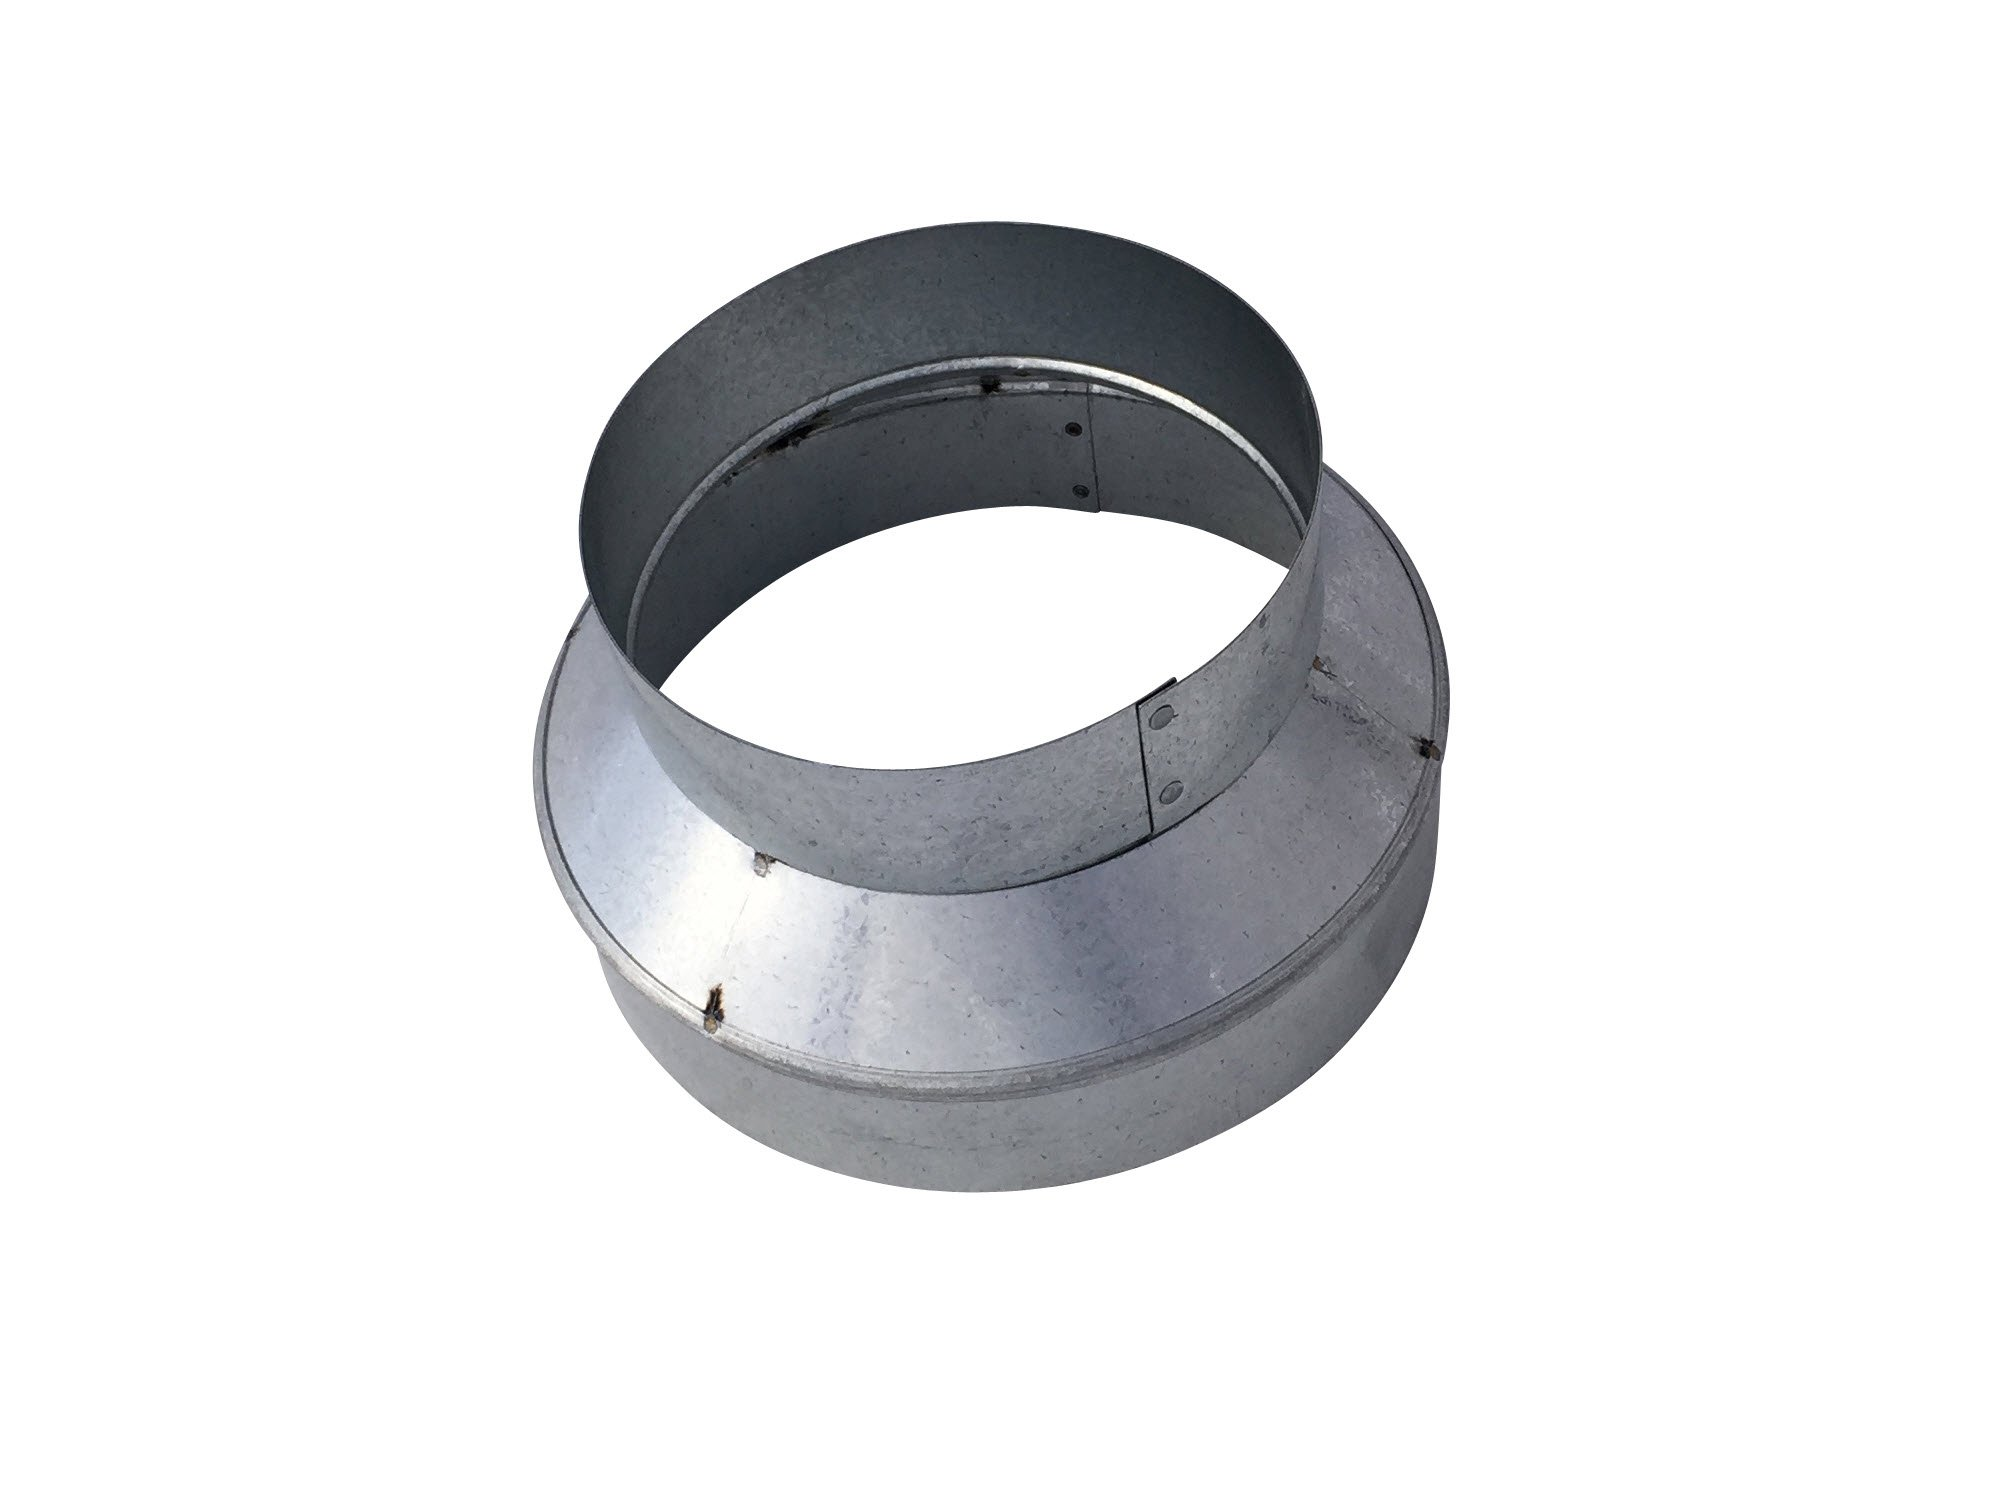 8x6 Inch Tapered Reducer Galvanized Steel - Vent Works